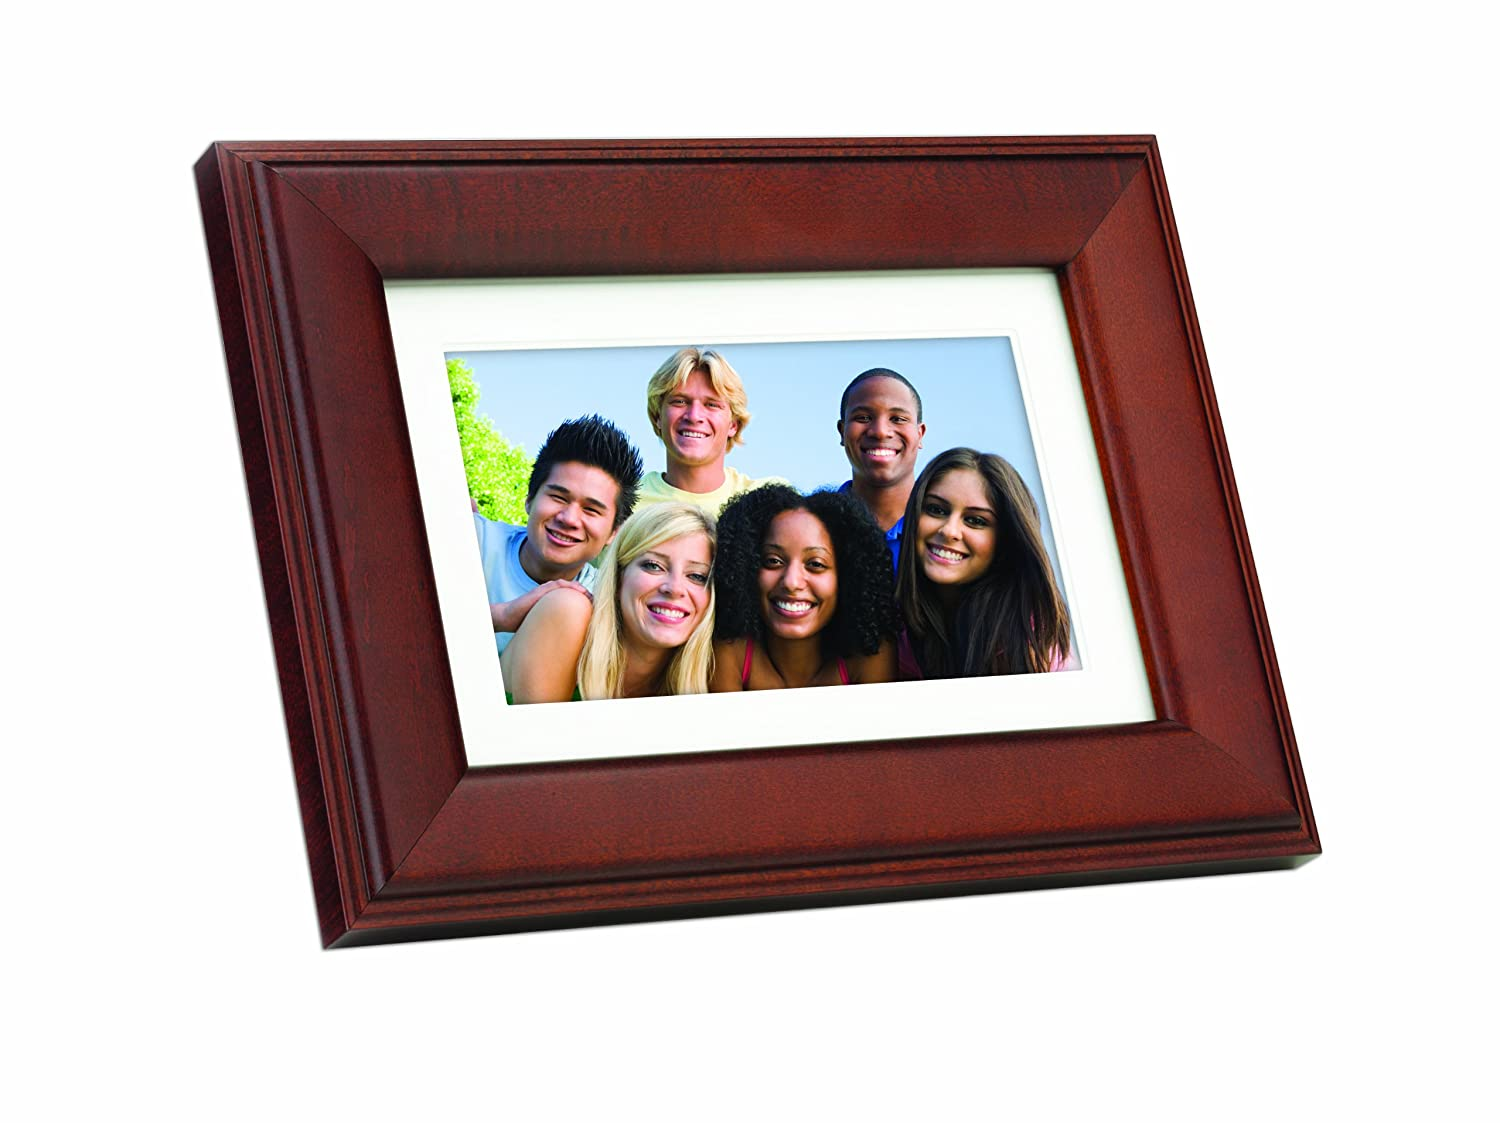 Amazon.com : GiiNii GN-705W 7-Inch Artforme Digital Picture Frame ...